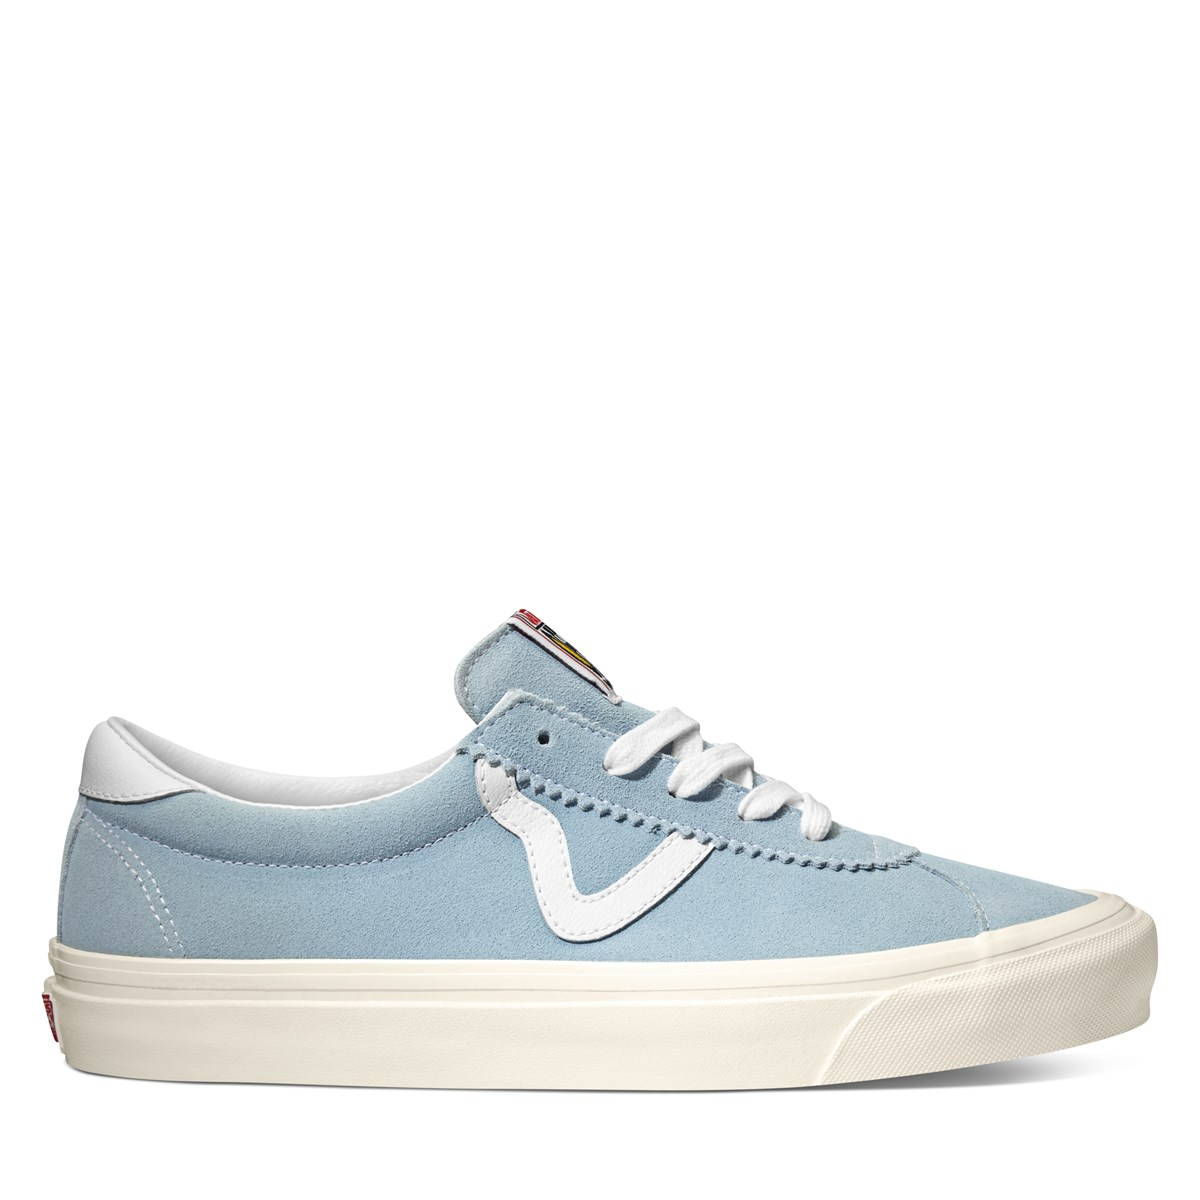 Anaheim Factory Style 73 DX Sneakers in Blue